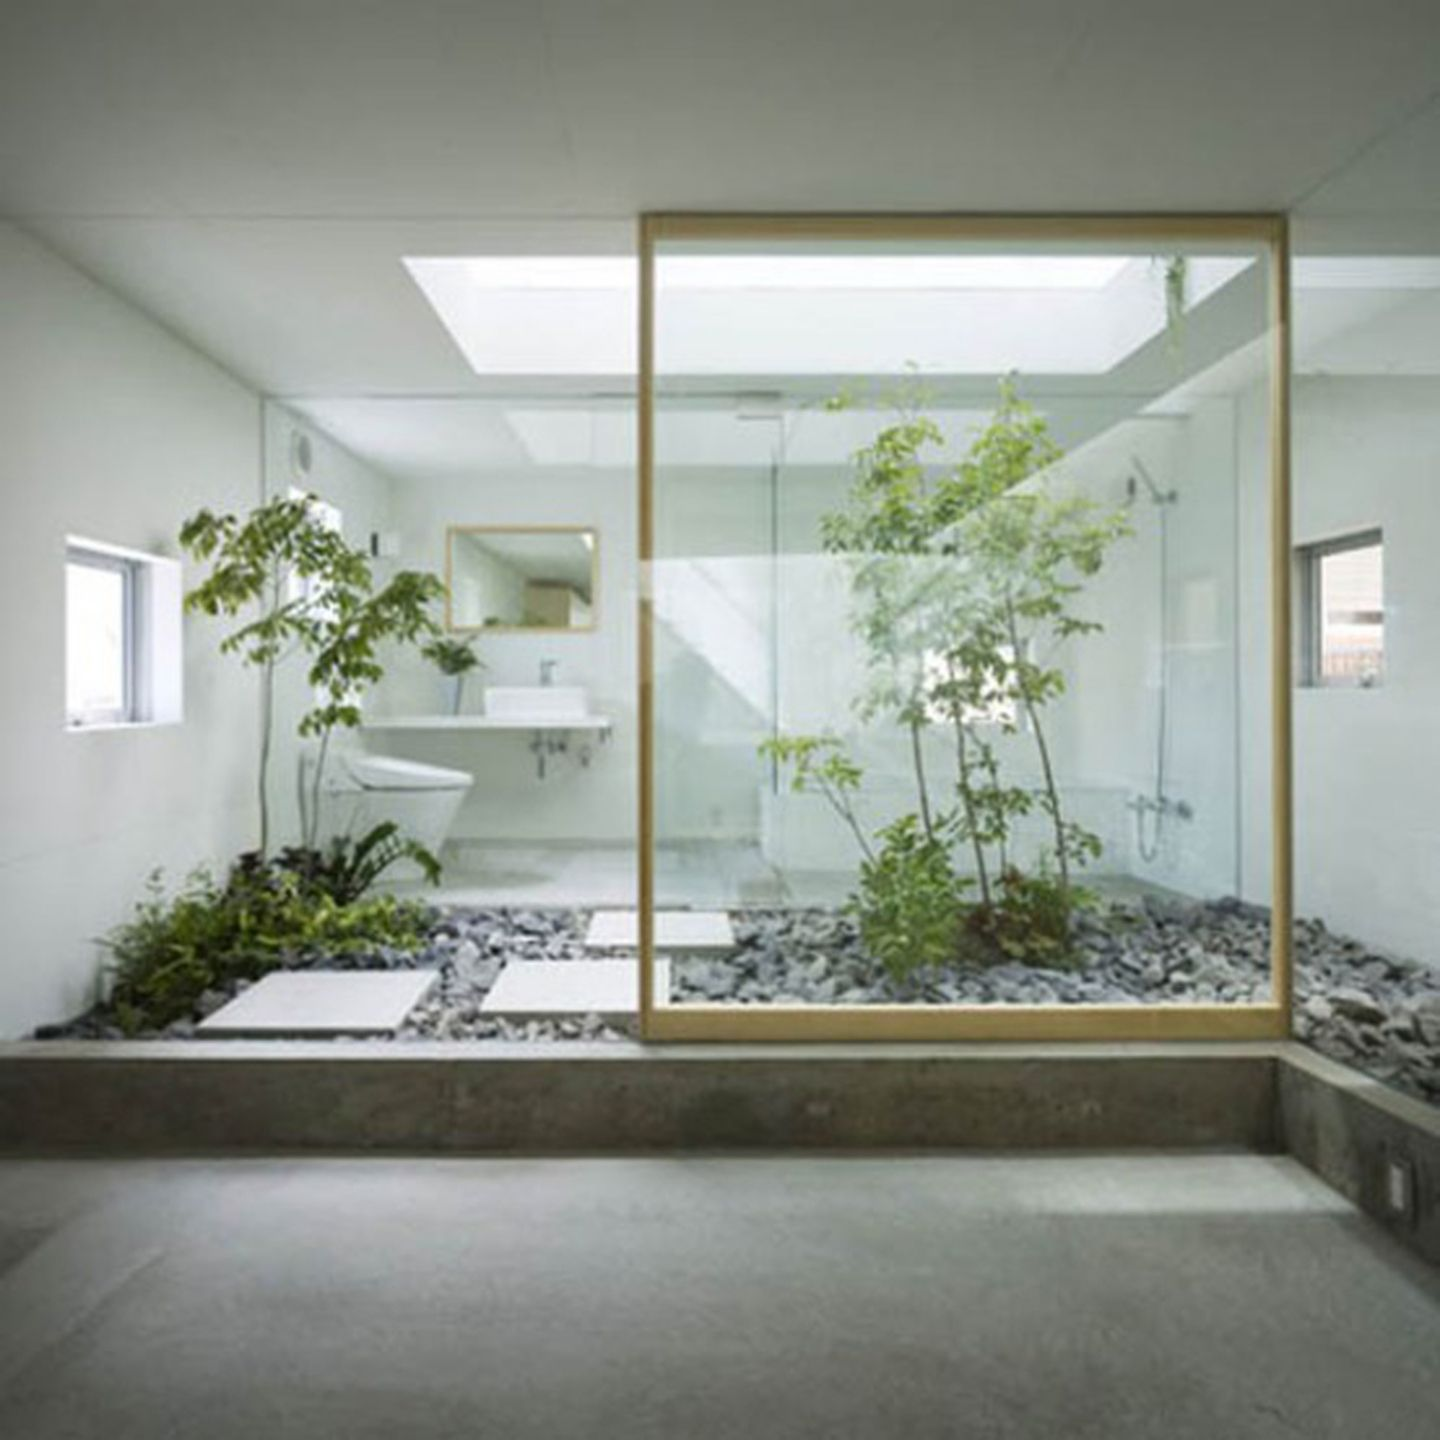 japanese interior design modern atrium - Japanese Home Decor